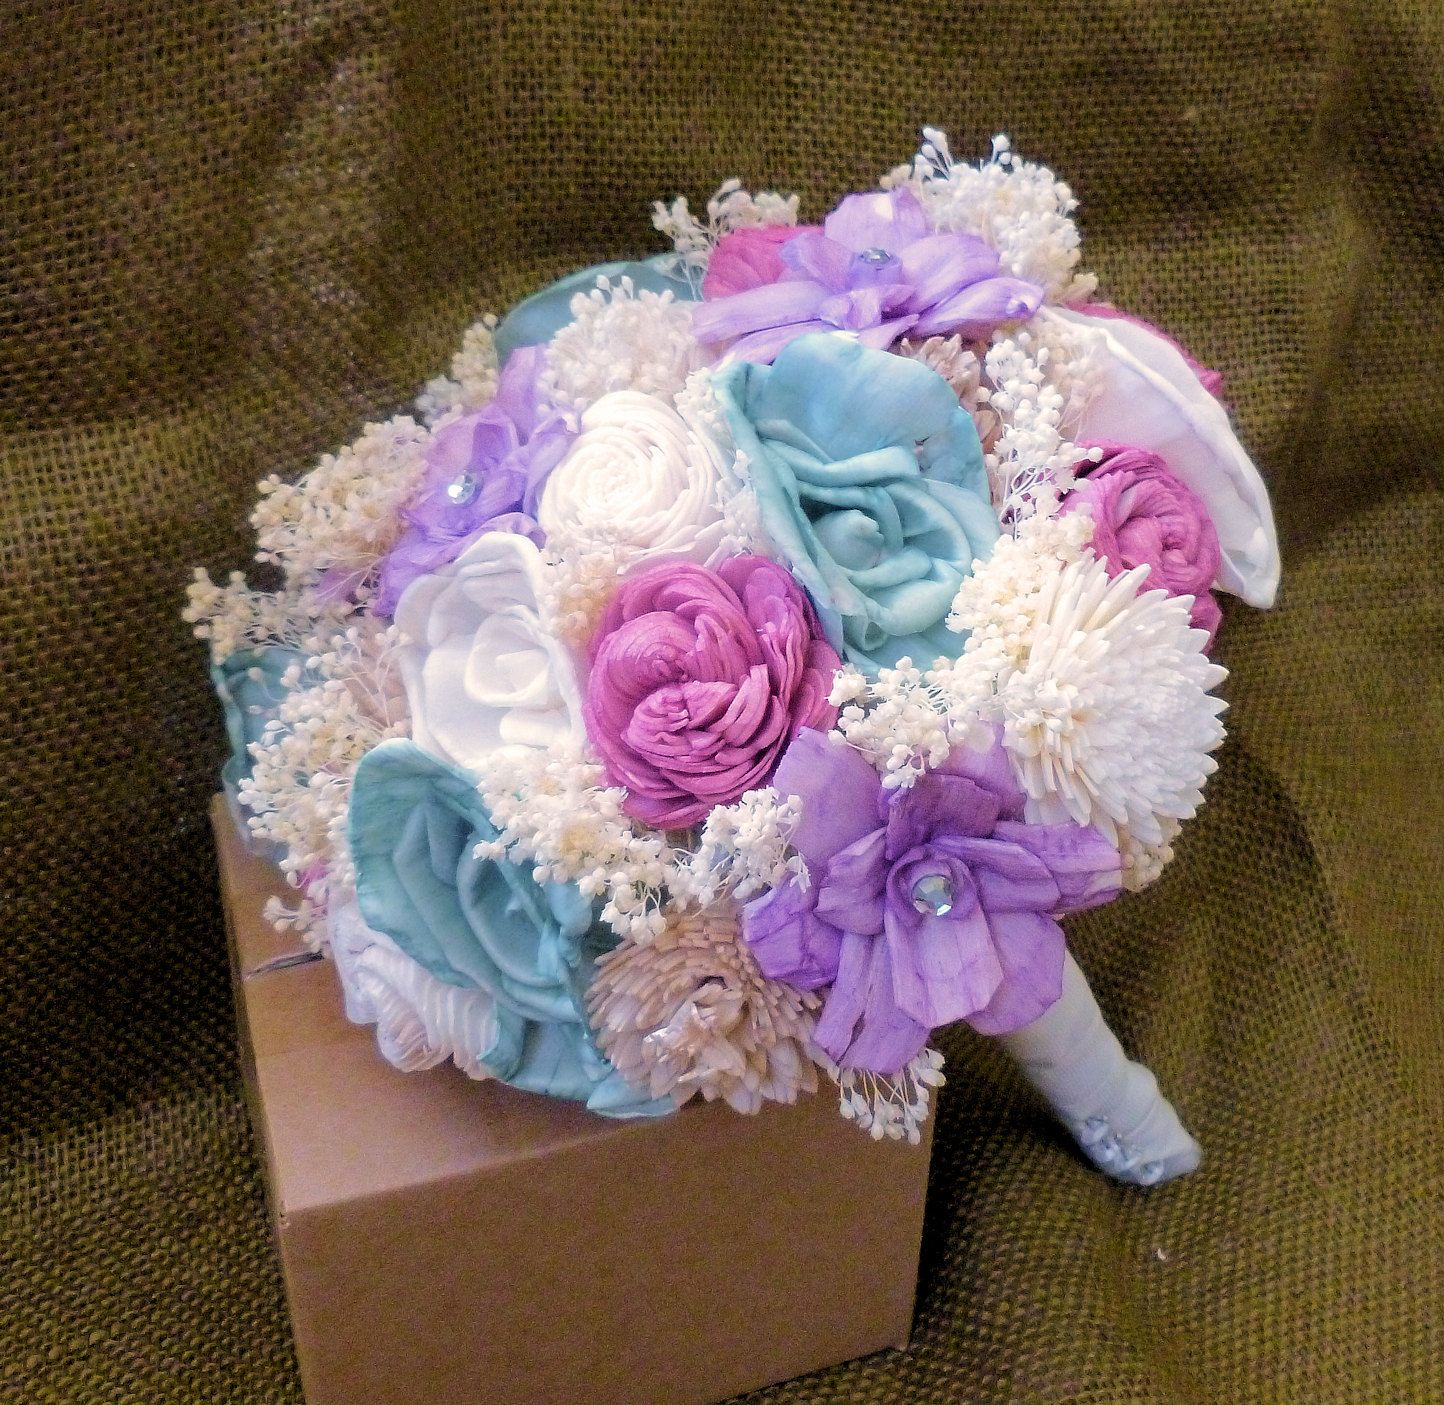 Handmade Wedding Bouquet Large-Handmade Flower, Bridal Bouquet, Keepsake Bouquet, Shabby Chic Wedding, Rustic Wedding. $85.00, via Etsy.